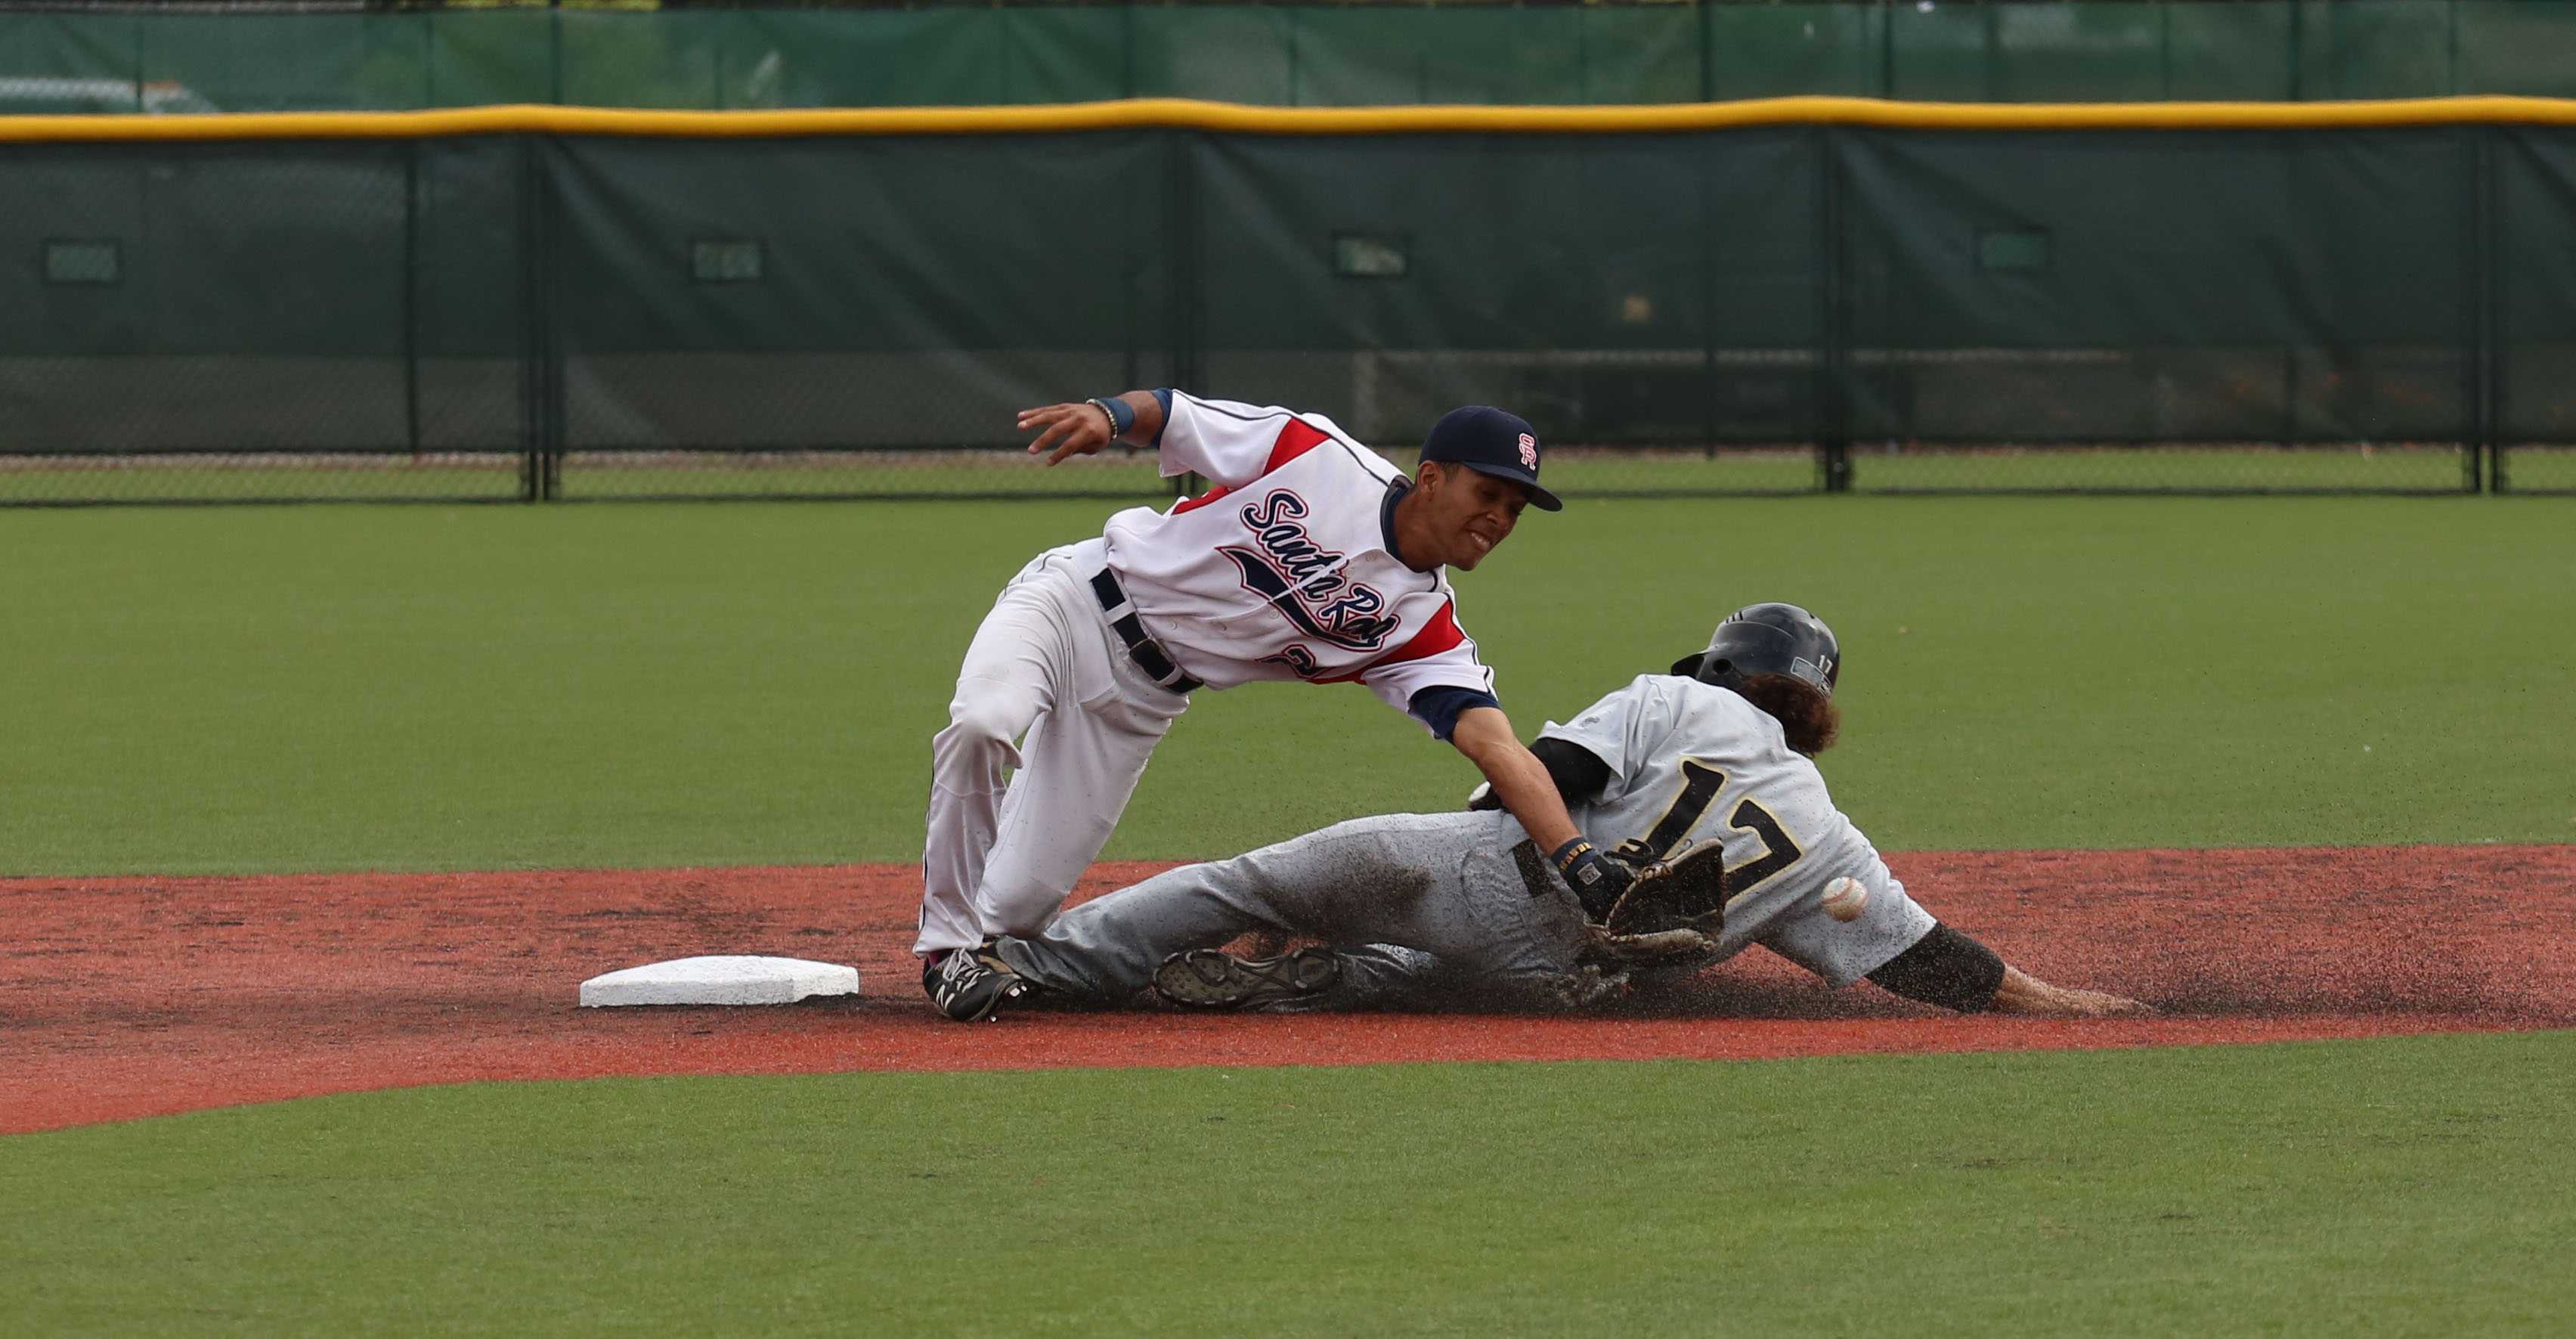 Santa Rosa Junior College second baseman Myles Andrews attempts to tag out a San Joaquin Delta runner trying to steal second base. SRJC captured its first conference championship since winning the  Big Valley Conference in 2005, on its way to winning the State Championship.